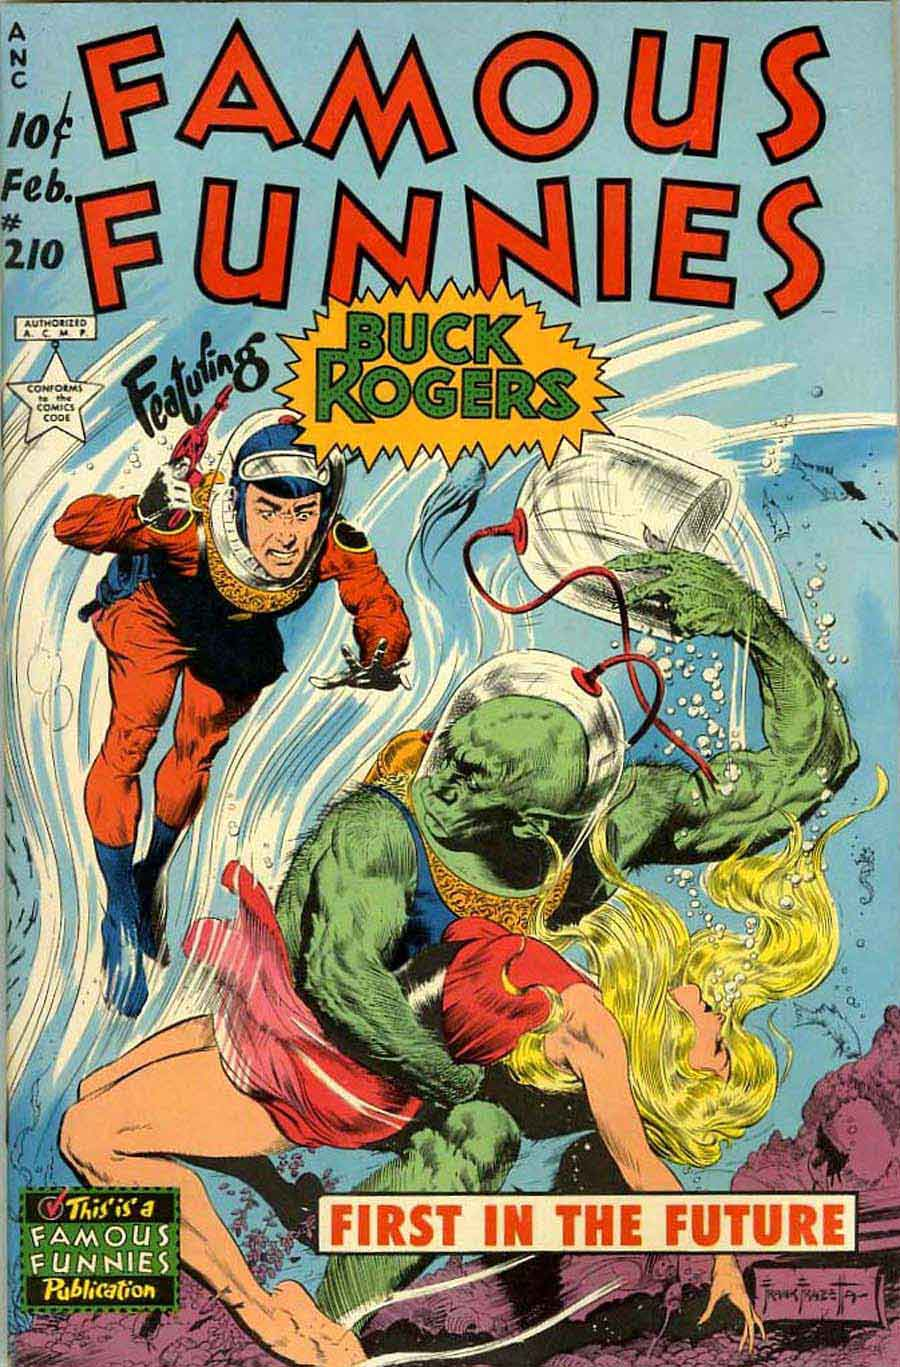 Frank Frazetta Buck Rogers 1950s golden age science fiction comic book cover / Famous Funnies #210